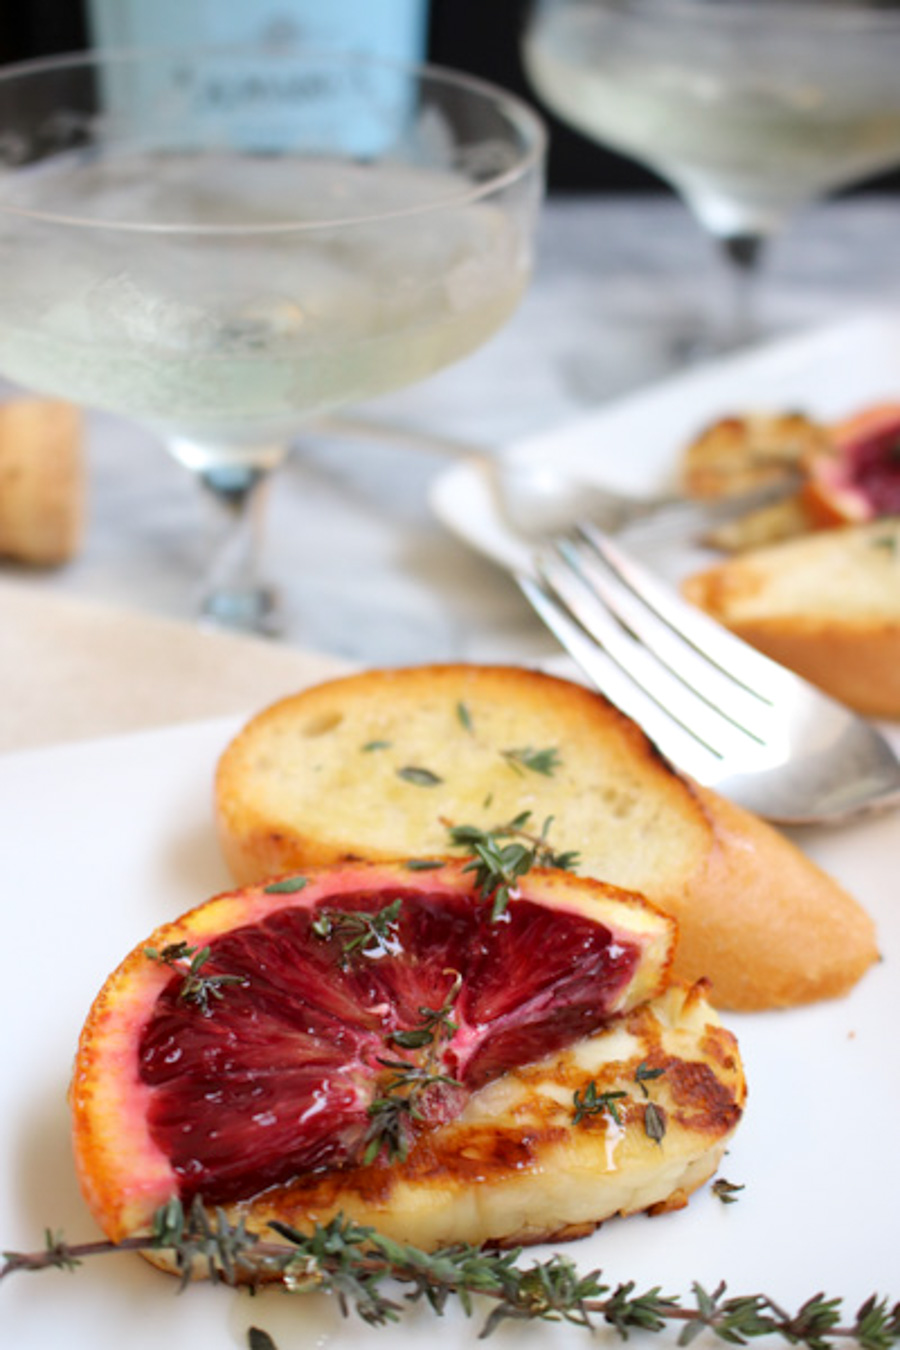 Grilled Halloumi with blood oranges on a plate with bread